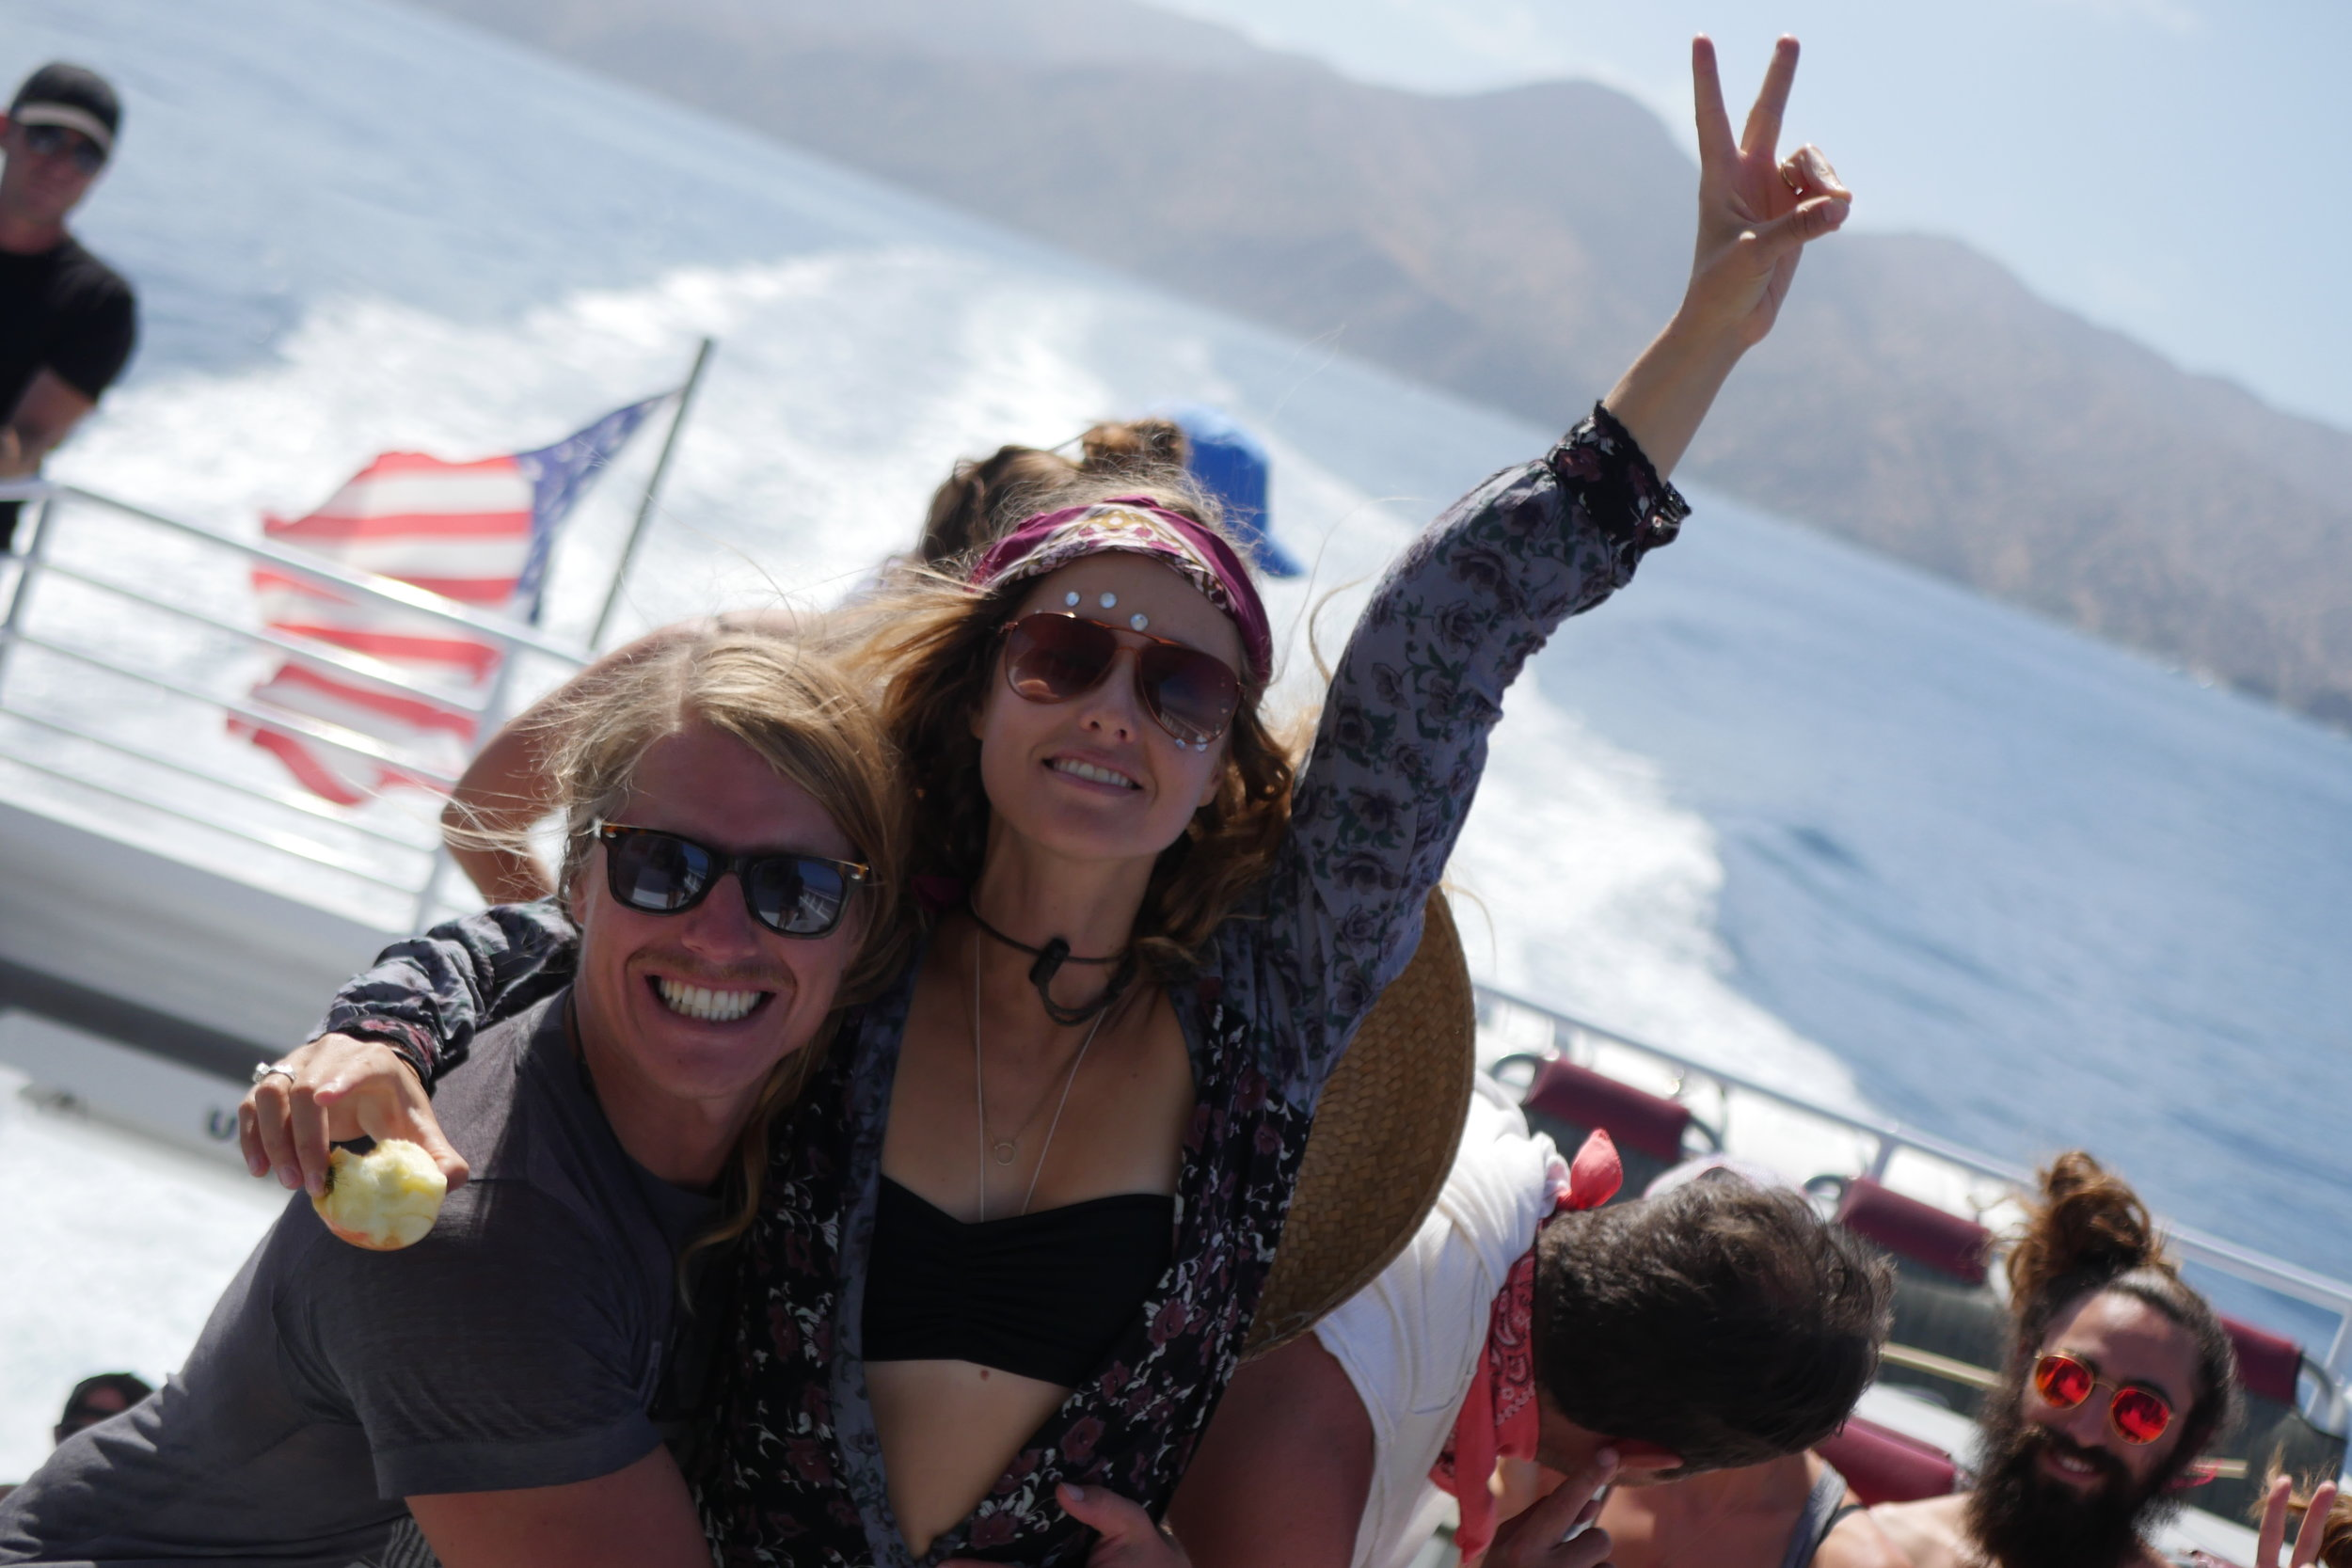 The boat ride over to Catalina Island takes about 1 hour